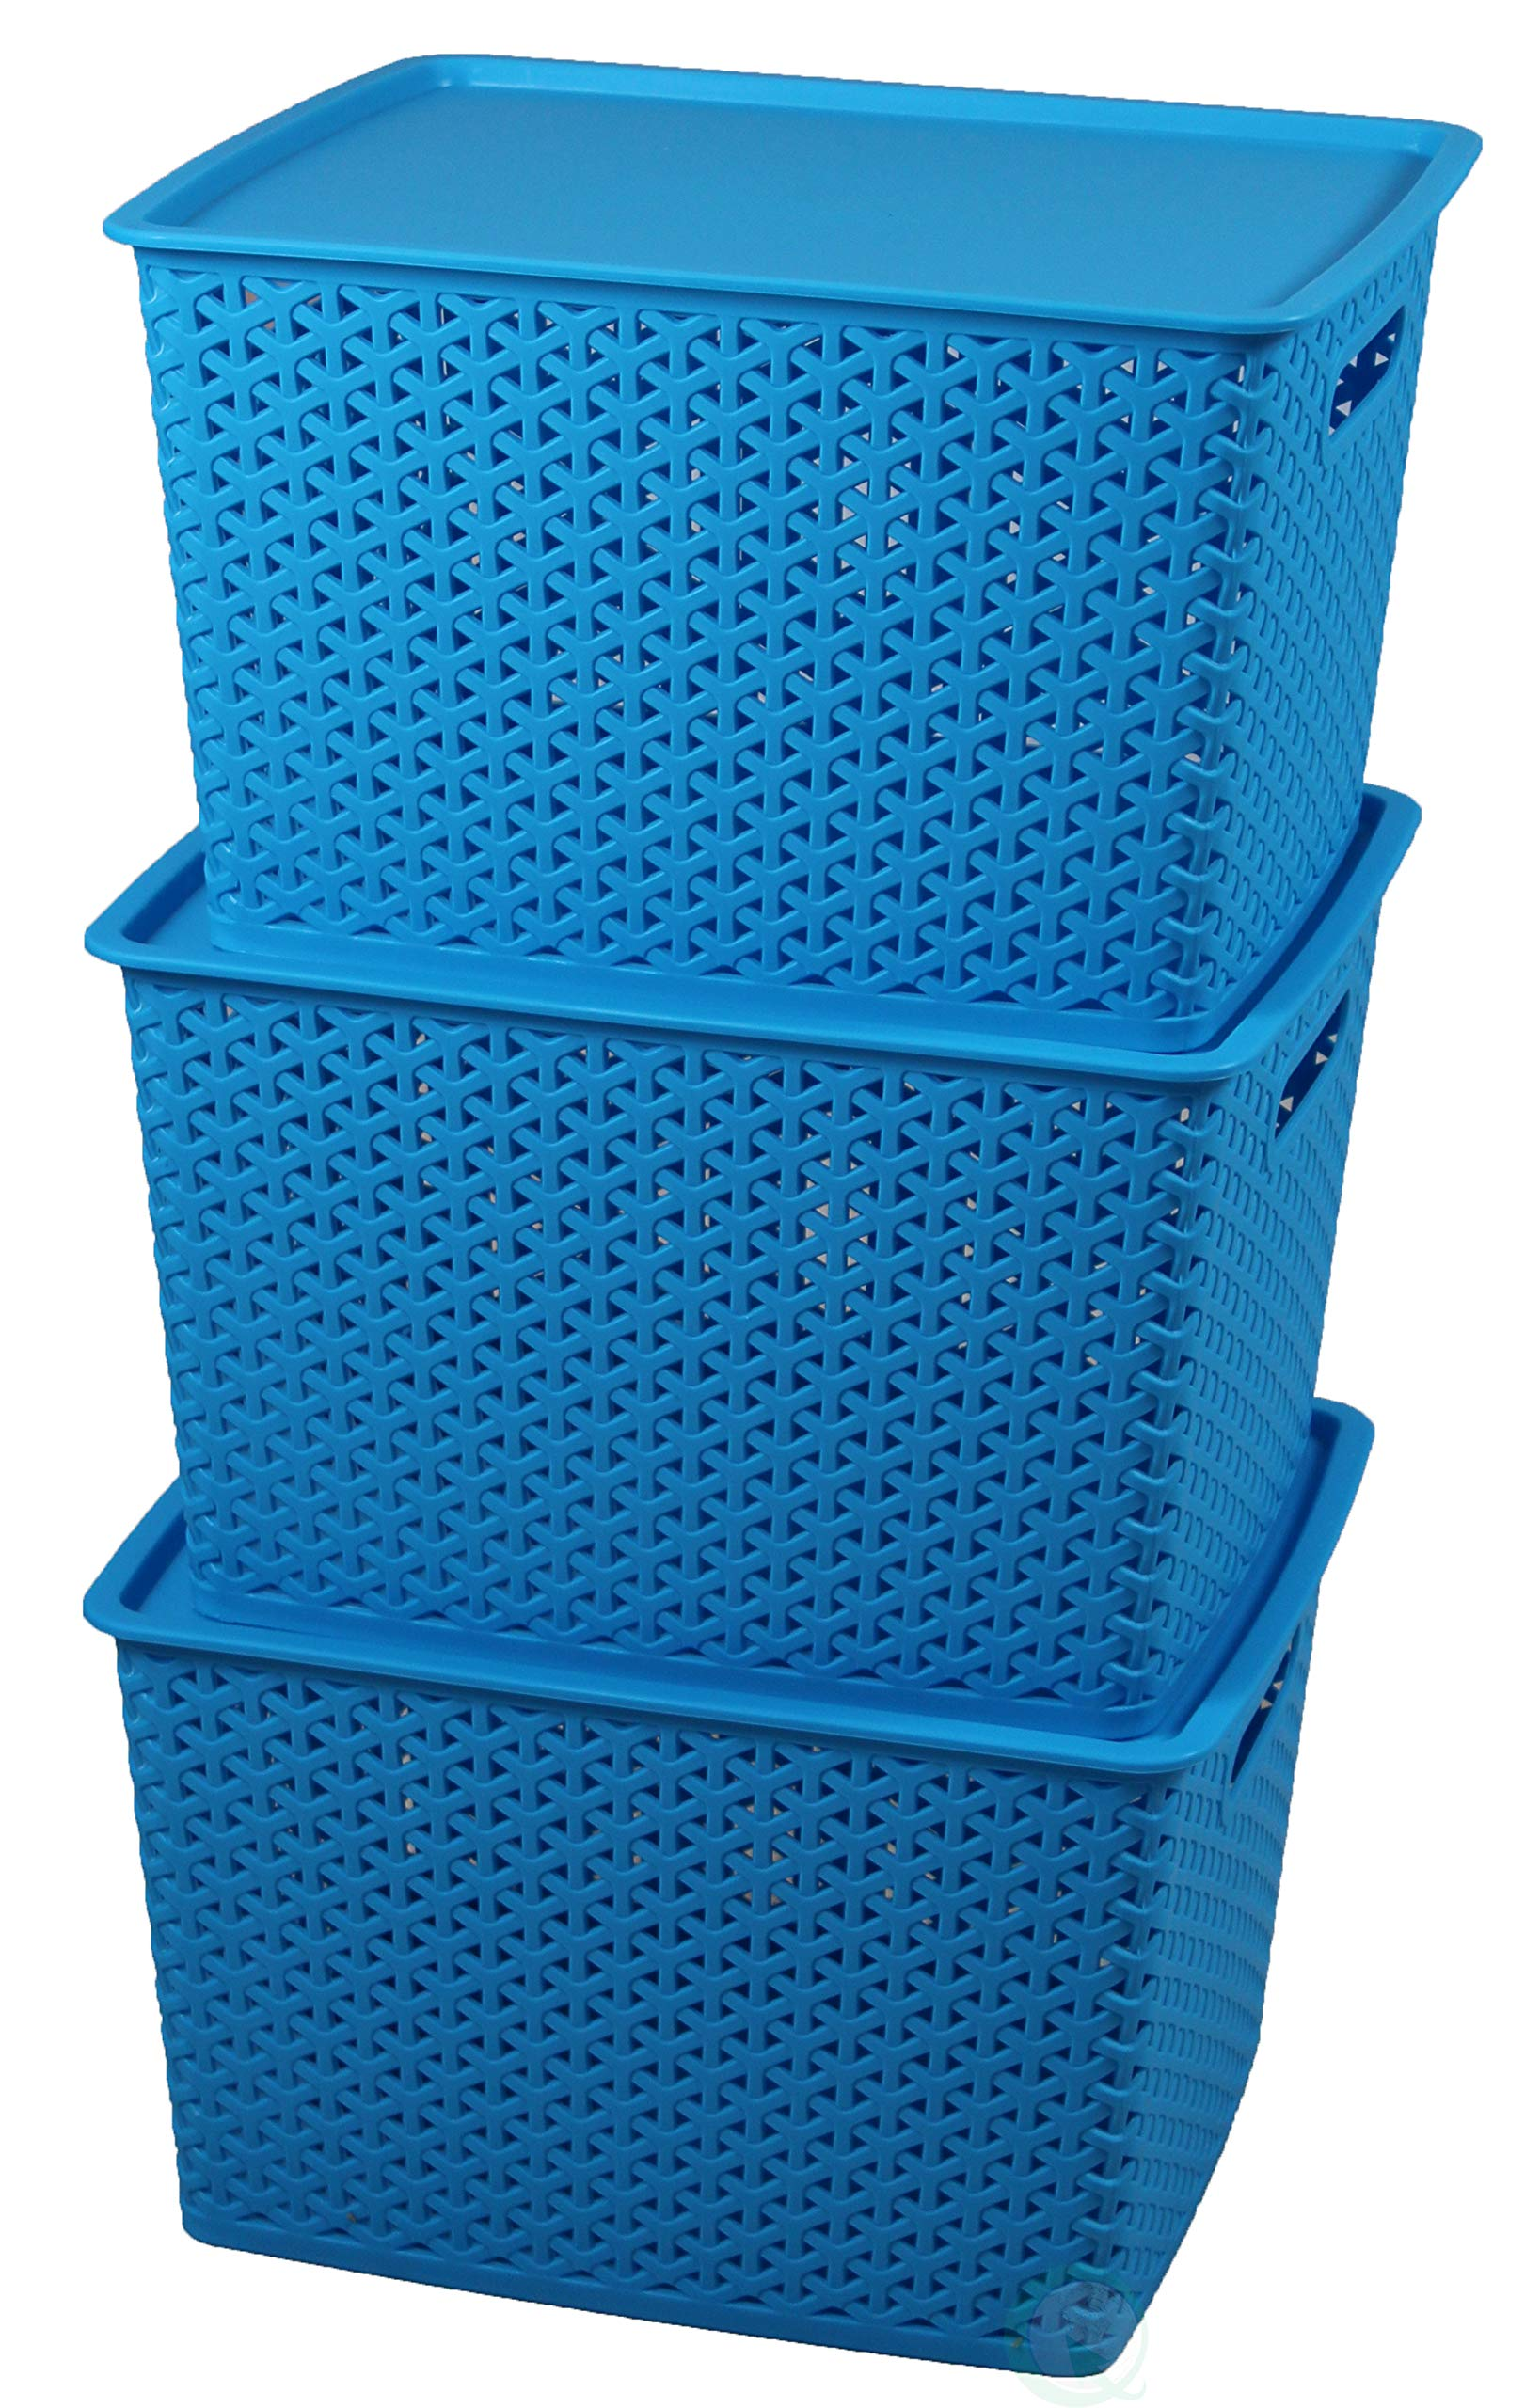 Basicwise QI003214.3 Plastic Blue Storage Container Box with Lid (Set of 3), by Basicwise